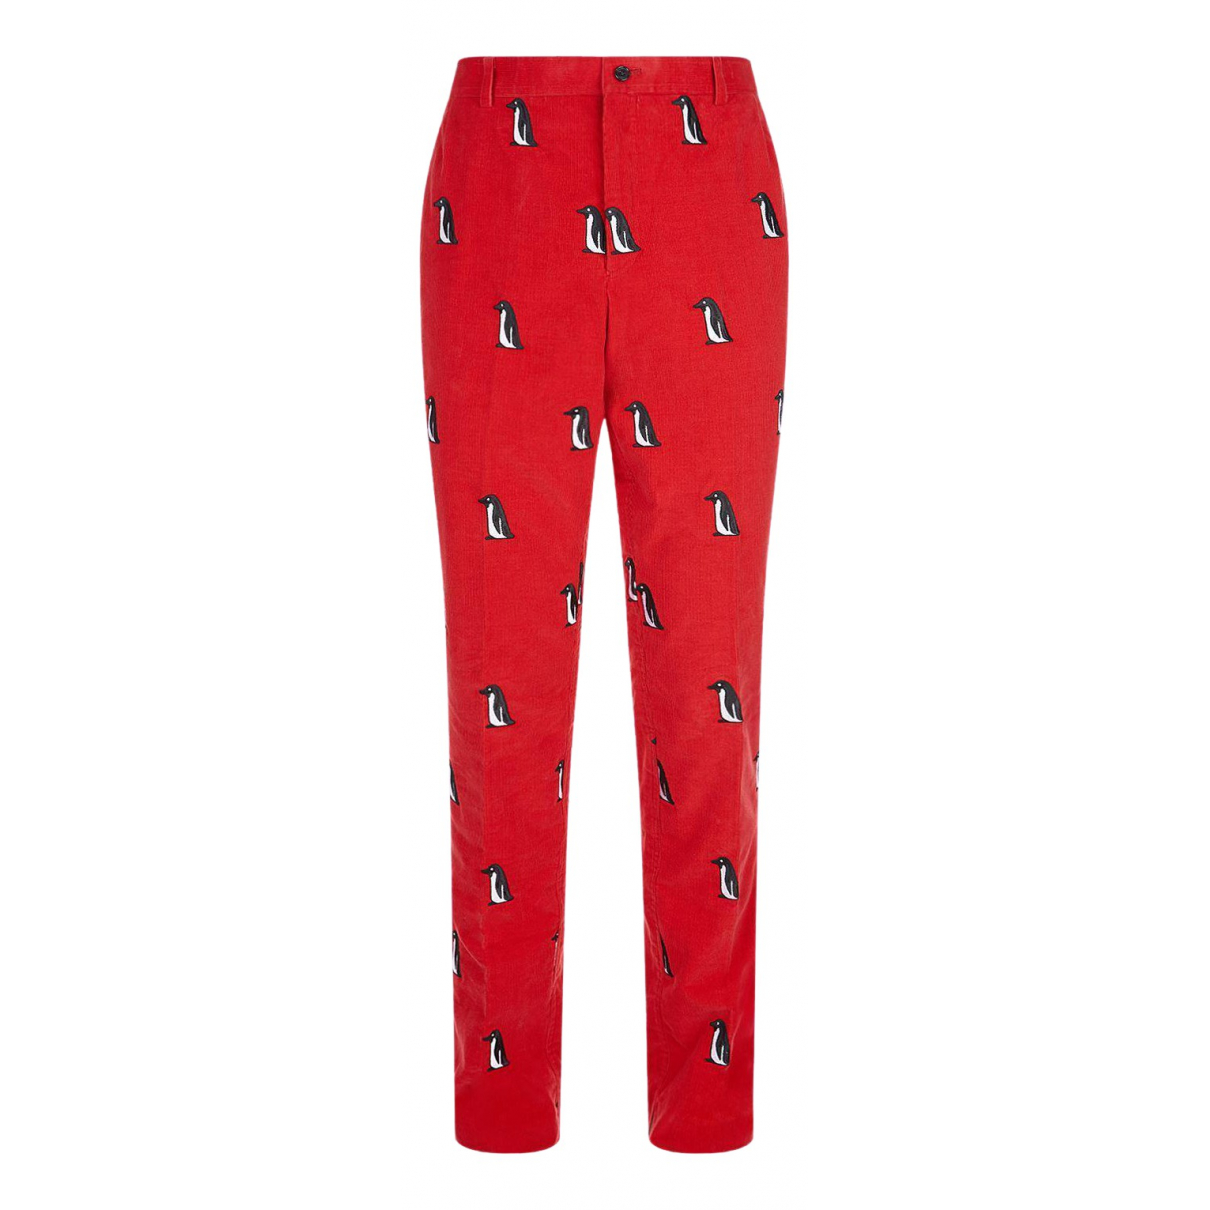 Thom Browne \N Red Cotton Trousers for Men S International